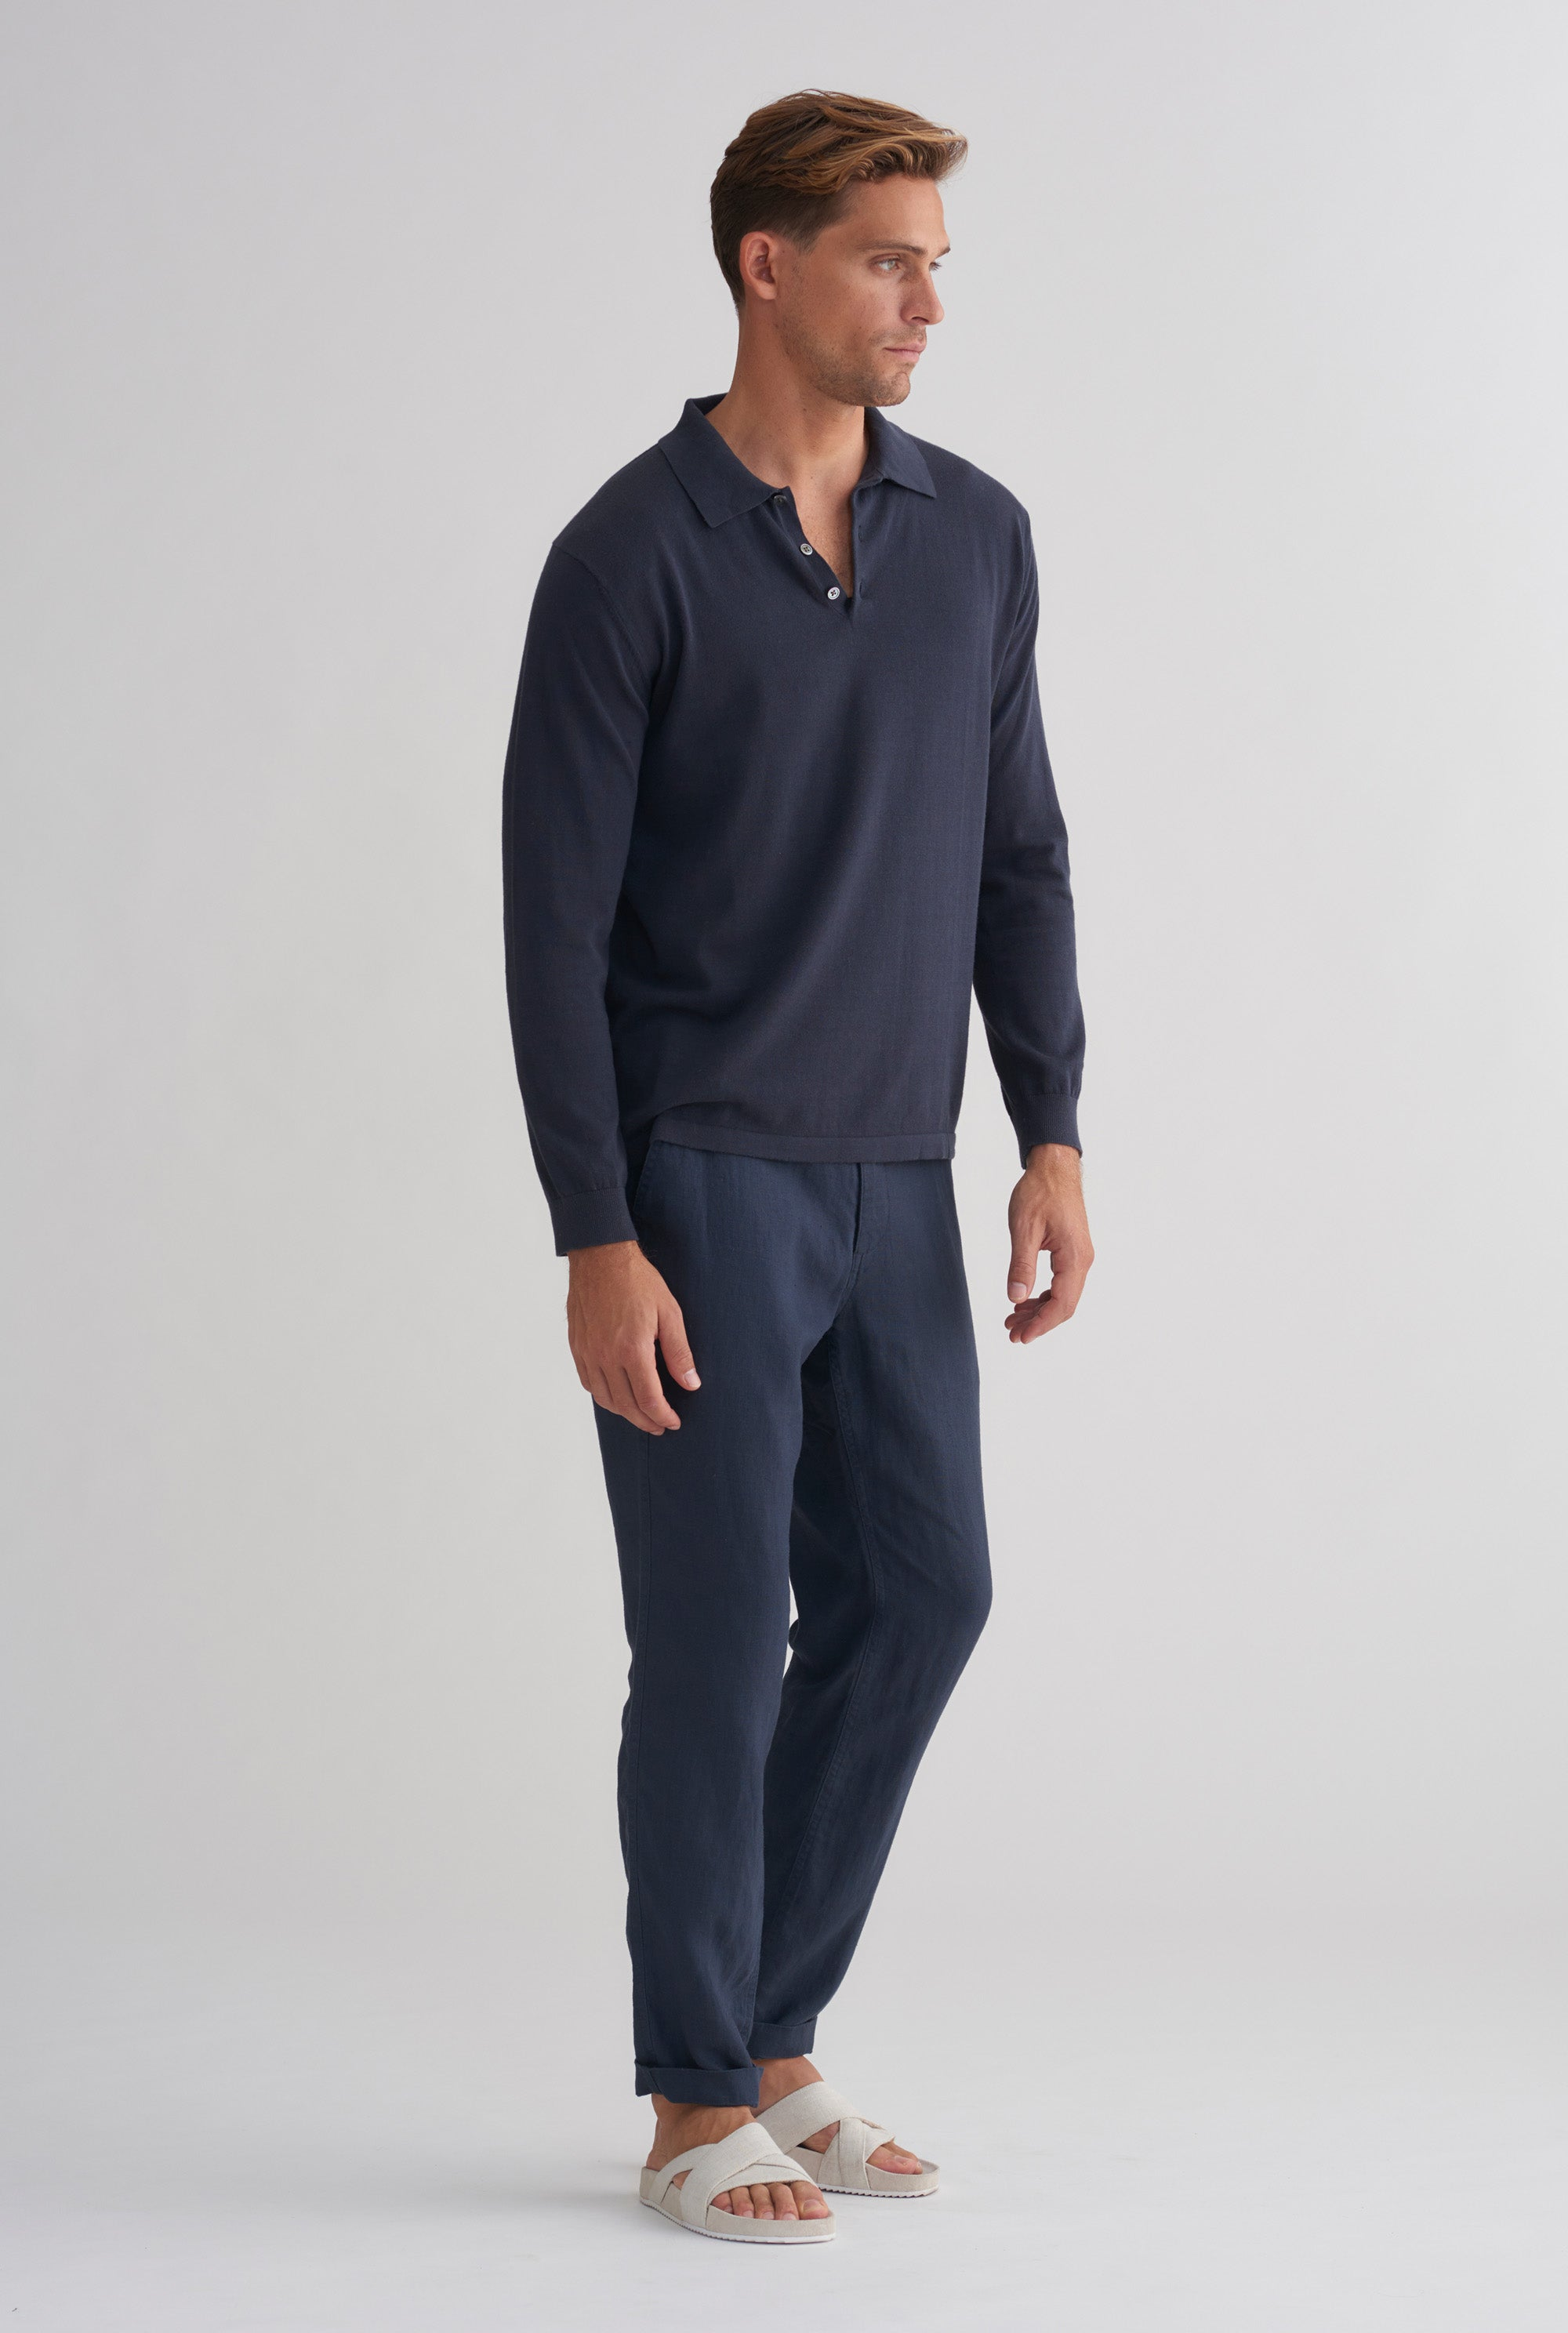 Long Sleeve Knitted Cotton Polo - Navy